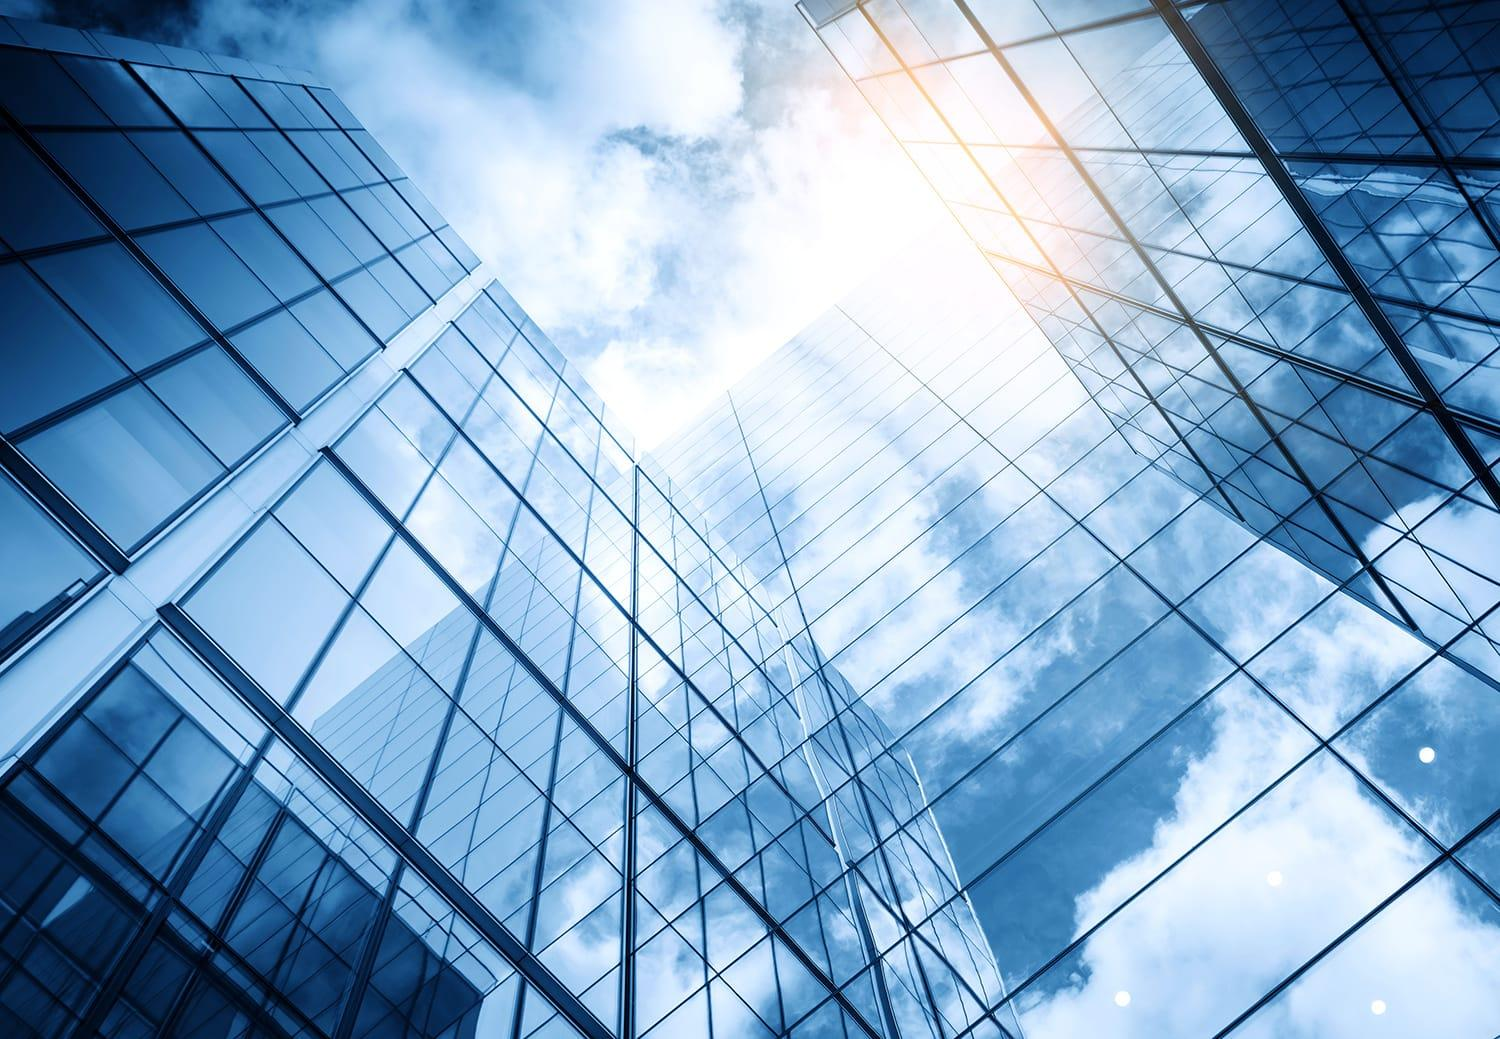 Clouds reflected on commercial building glass windows